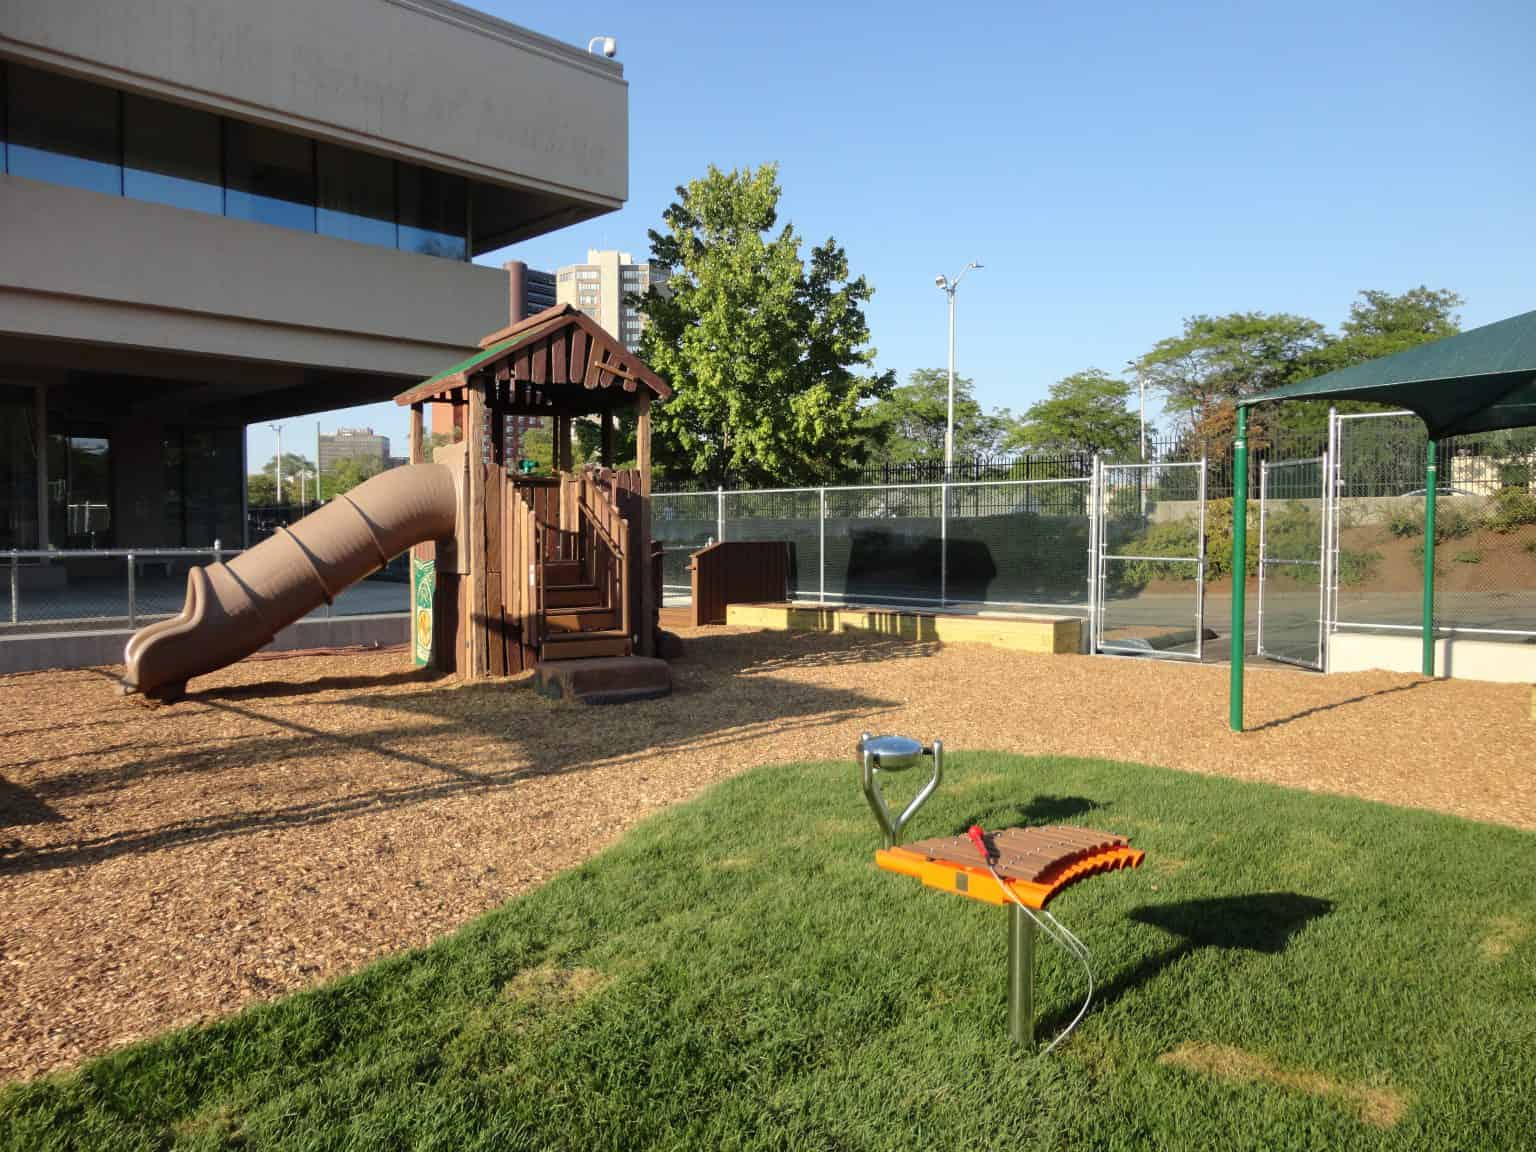 phyllis-bodel-daycare-playground-new-haven-ct_18128629321_o-1536x1152